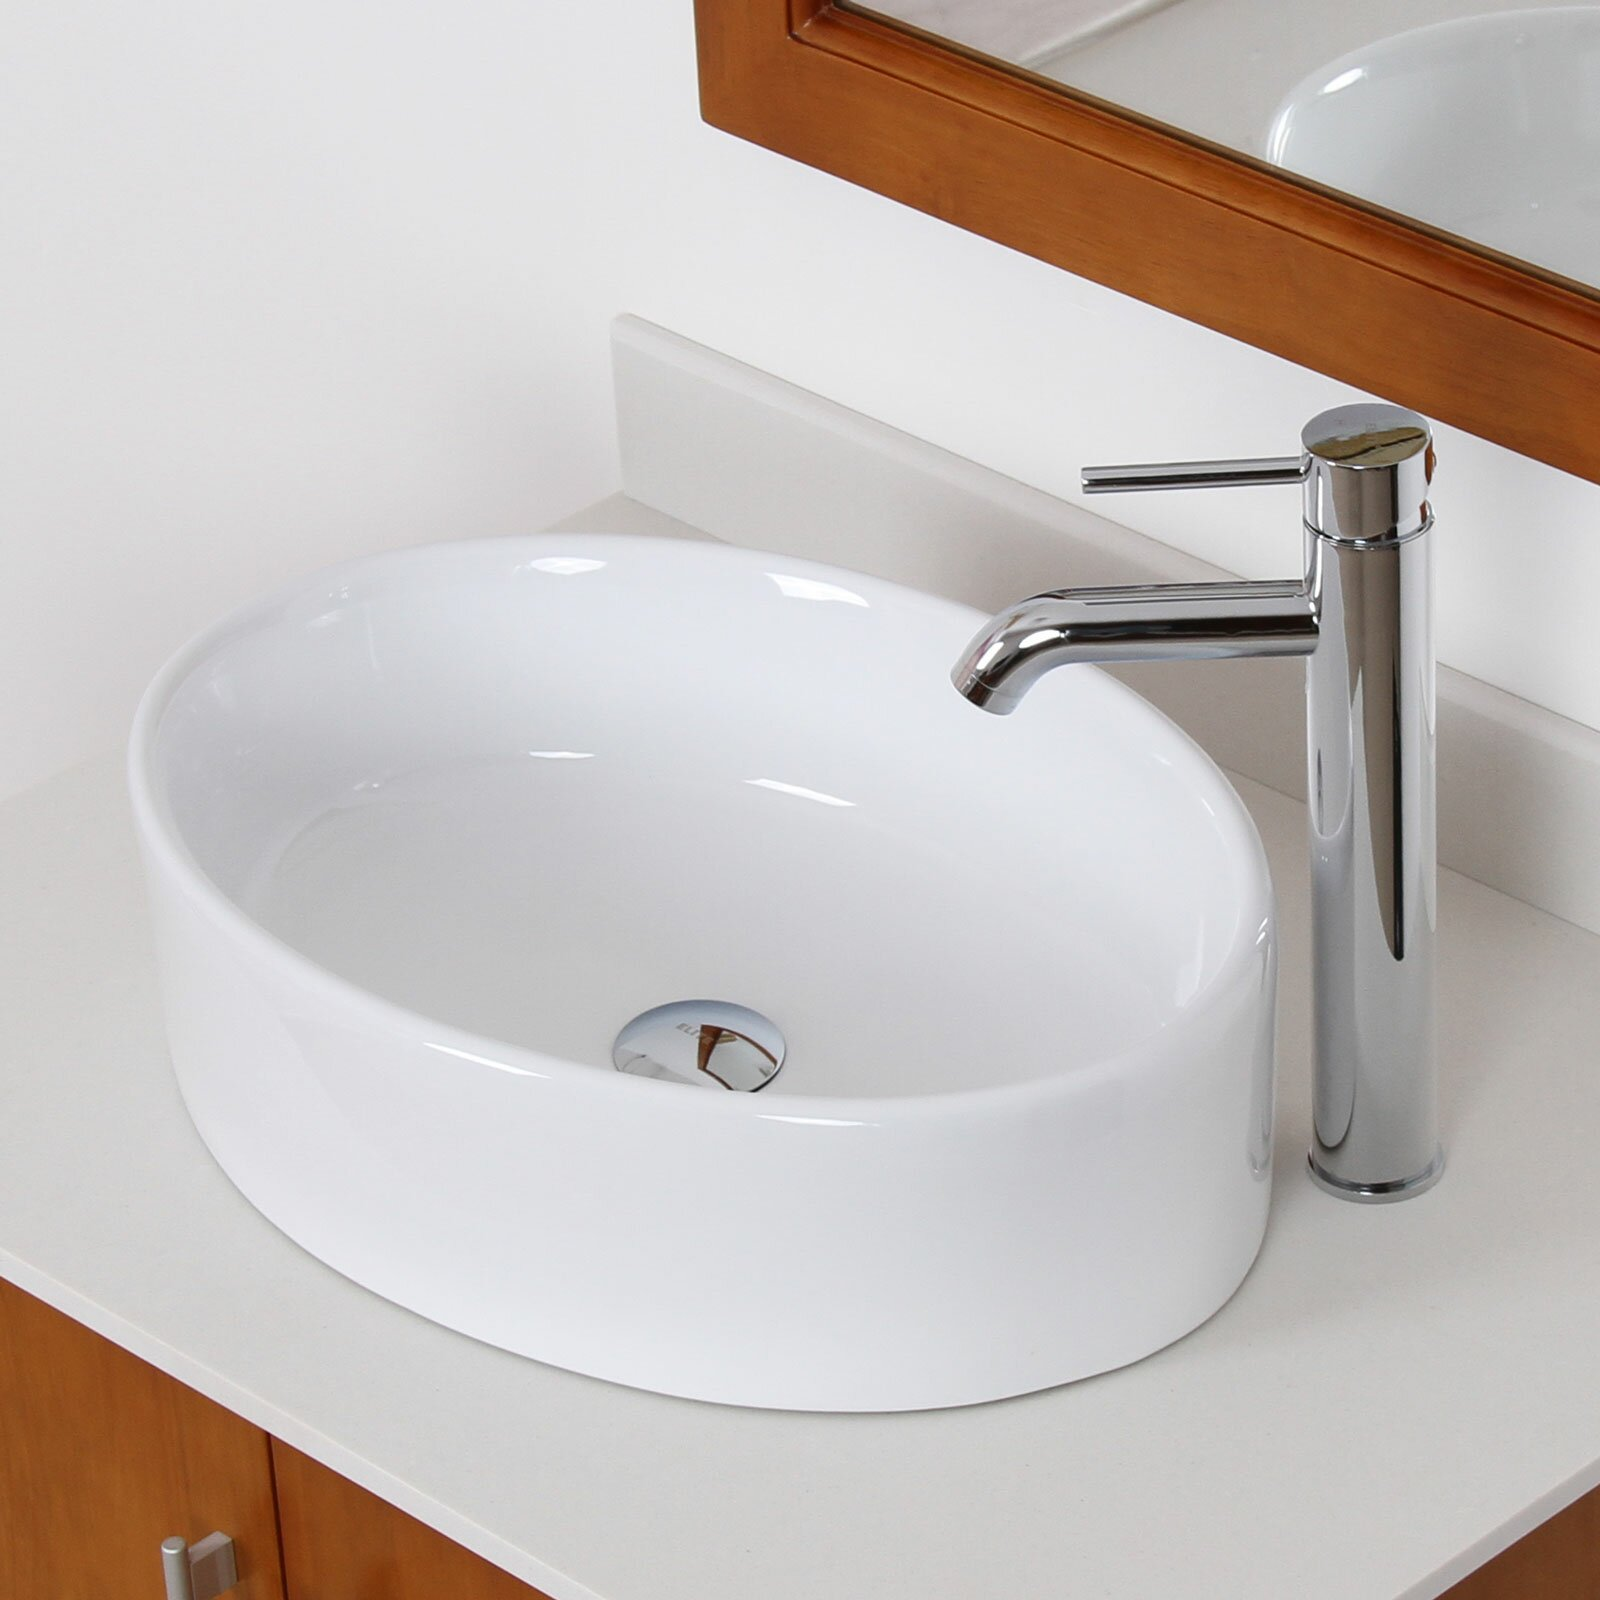 Elite Ceramic Elliptical Bathroom Sink & Reviews Wayfair.ca